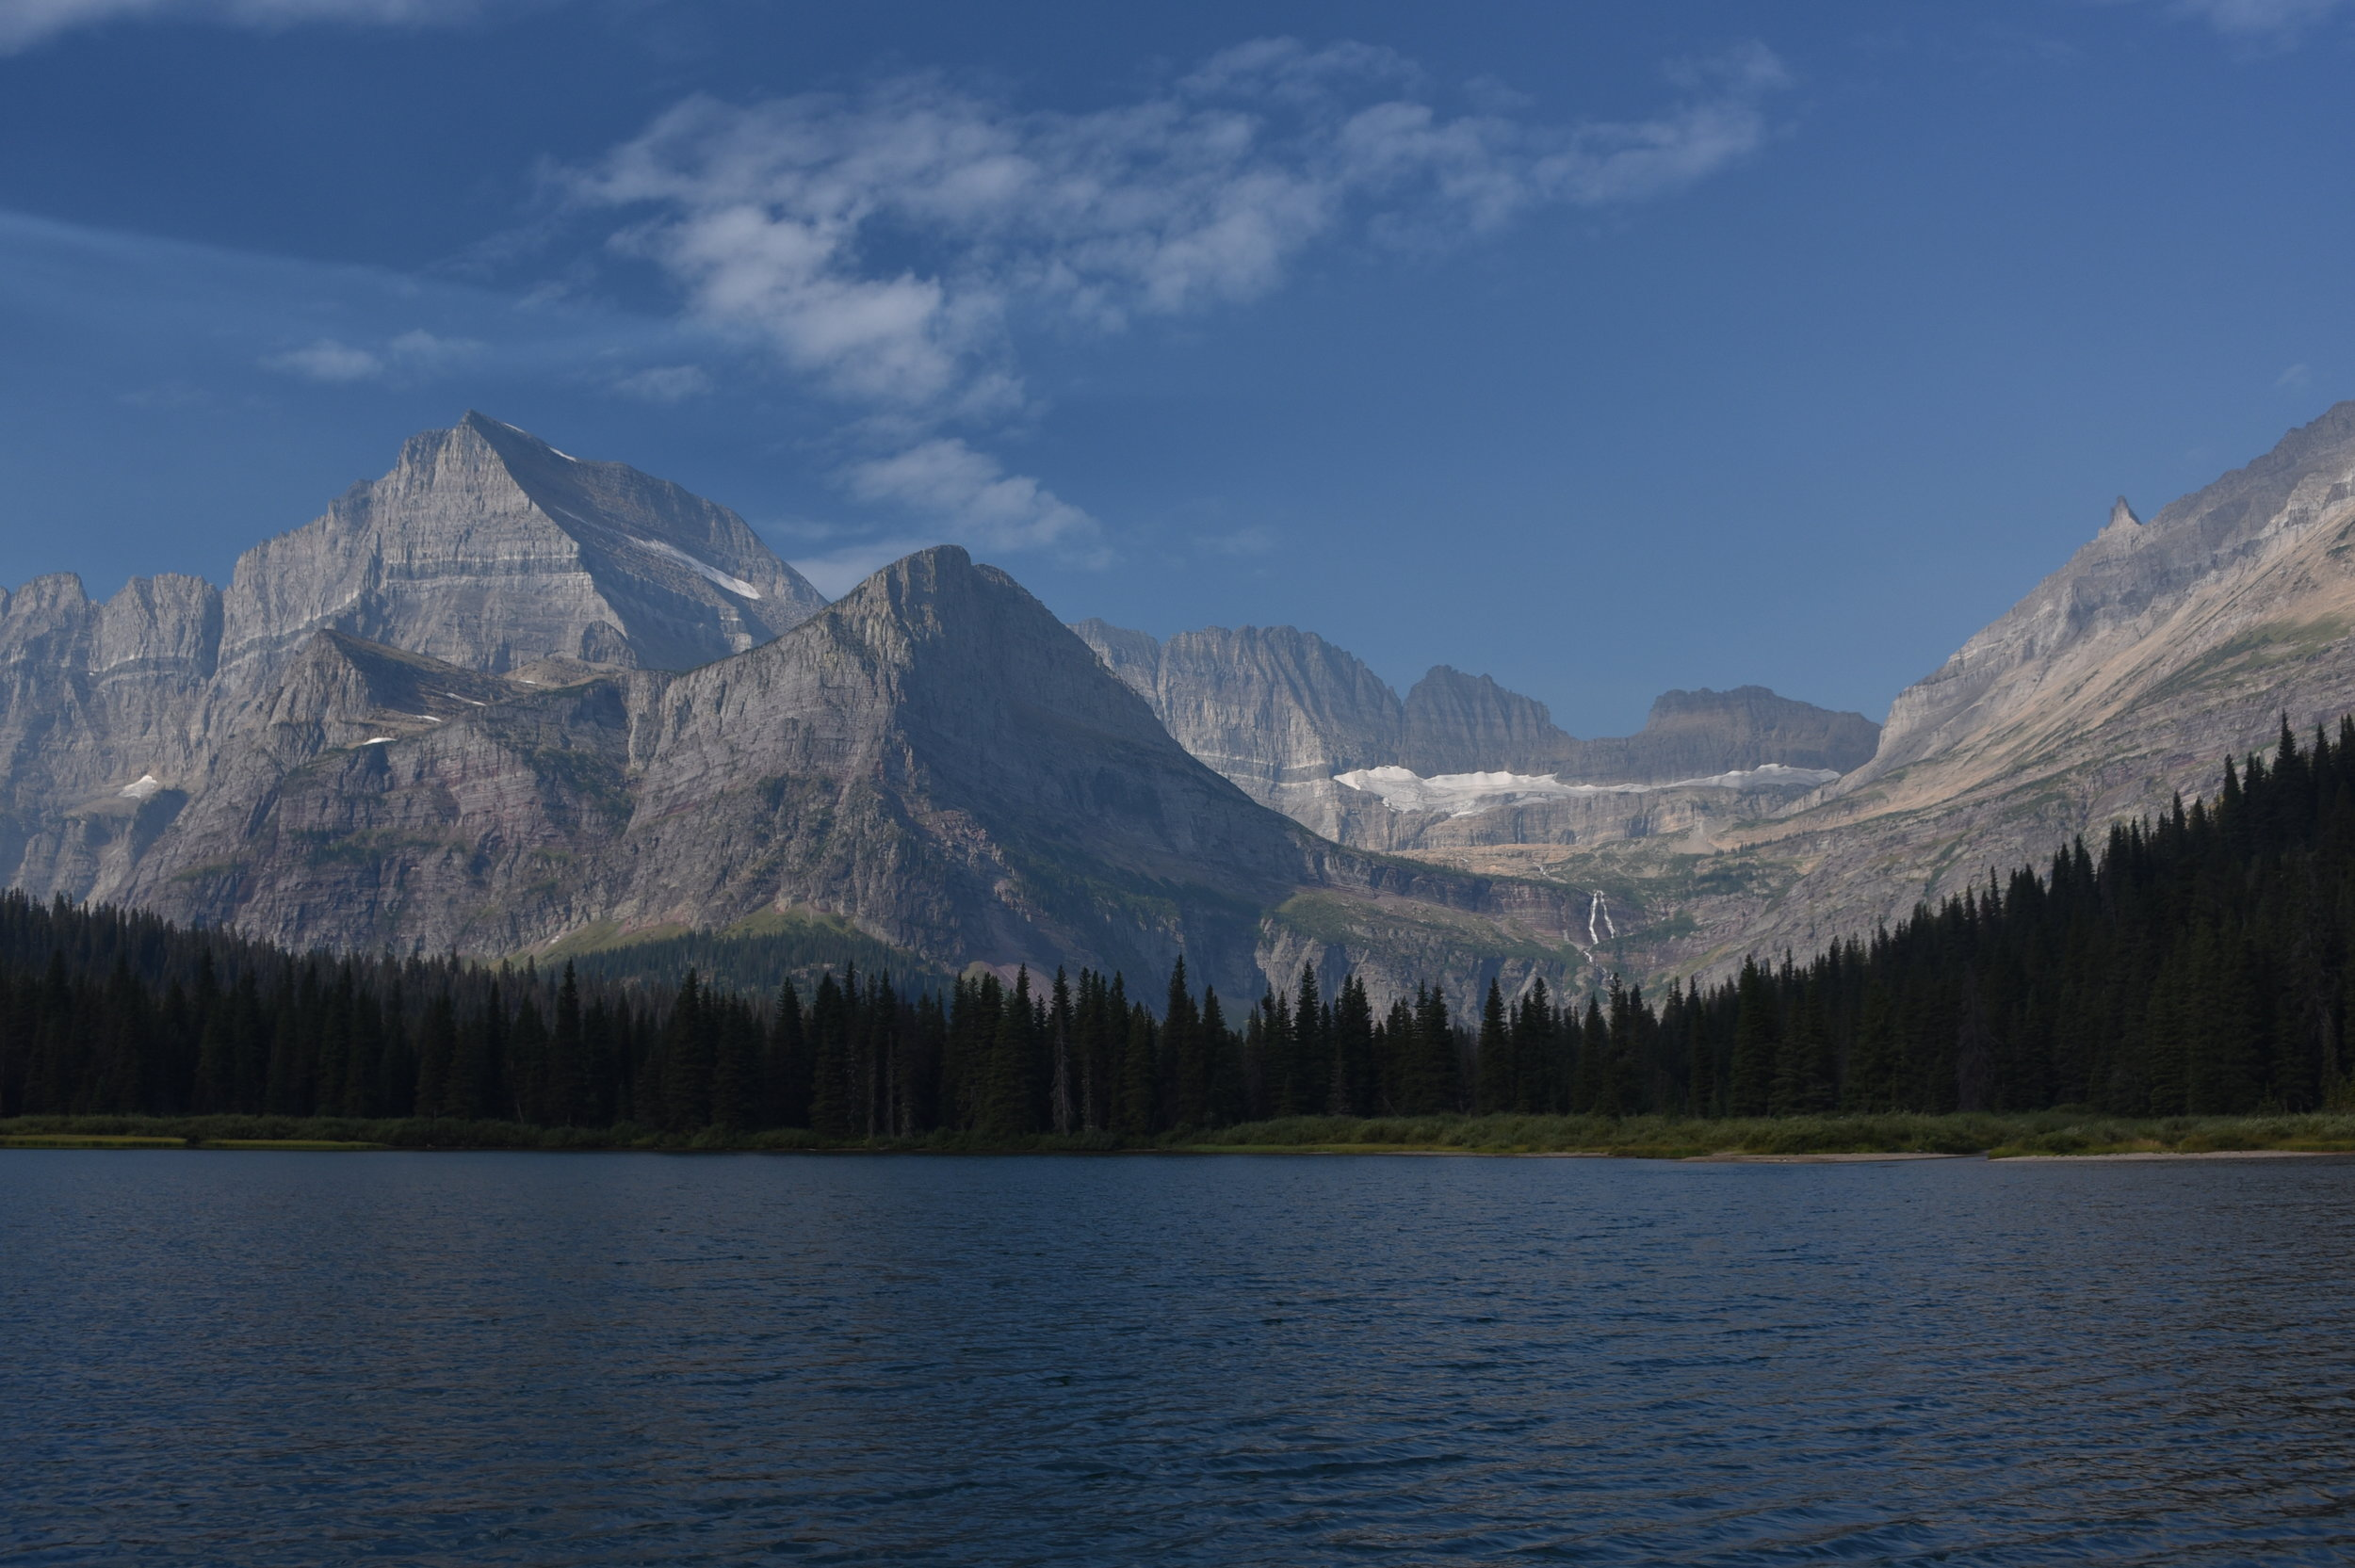 View over Lake Josephine to Grinnell Glacier